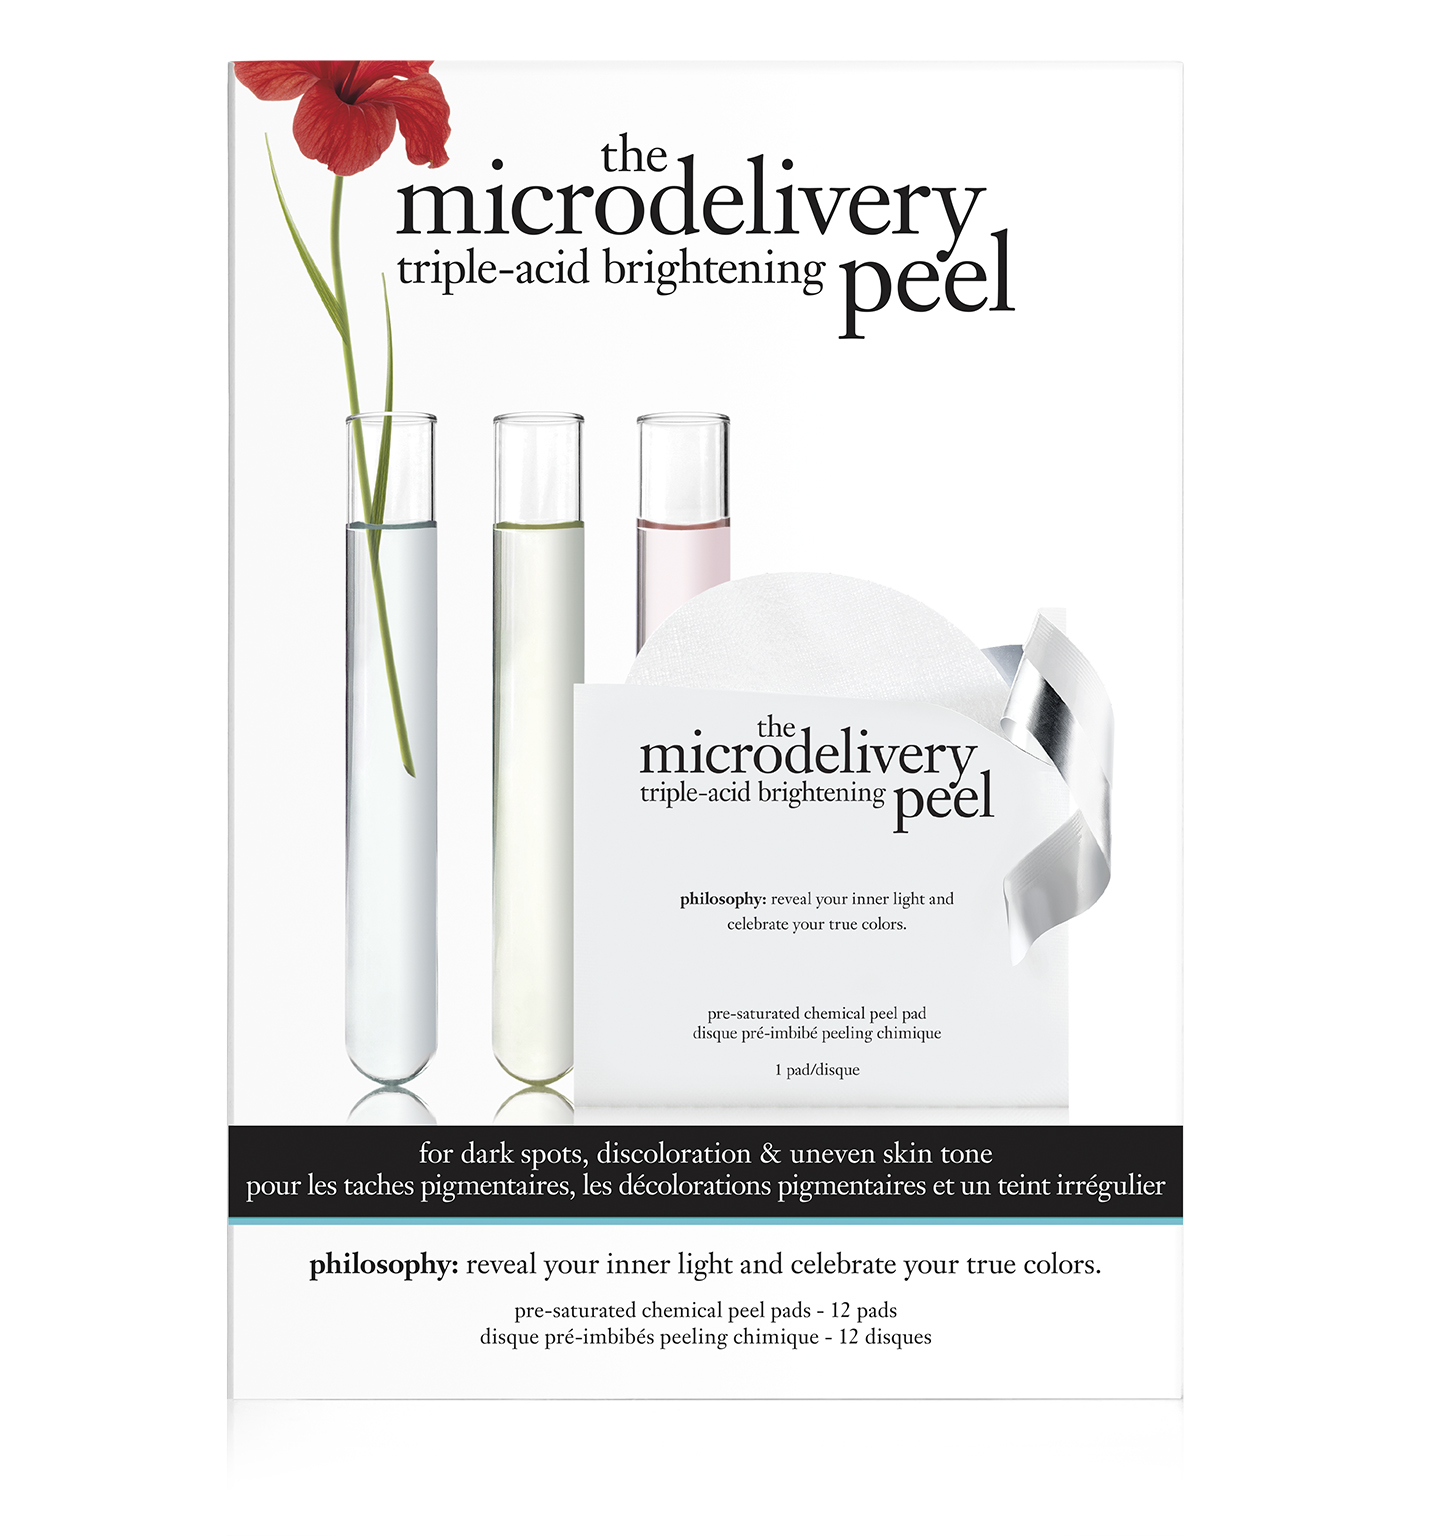 philosophy, microdelivery triple-acid brightening peel pads